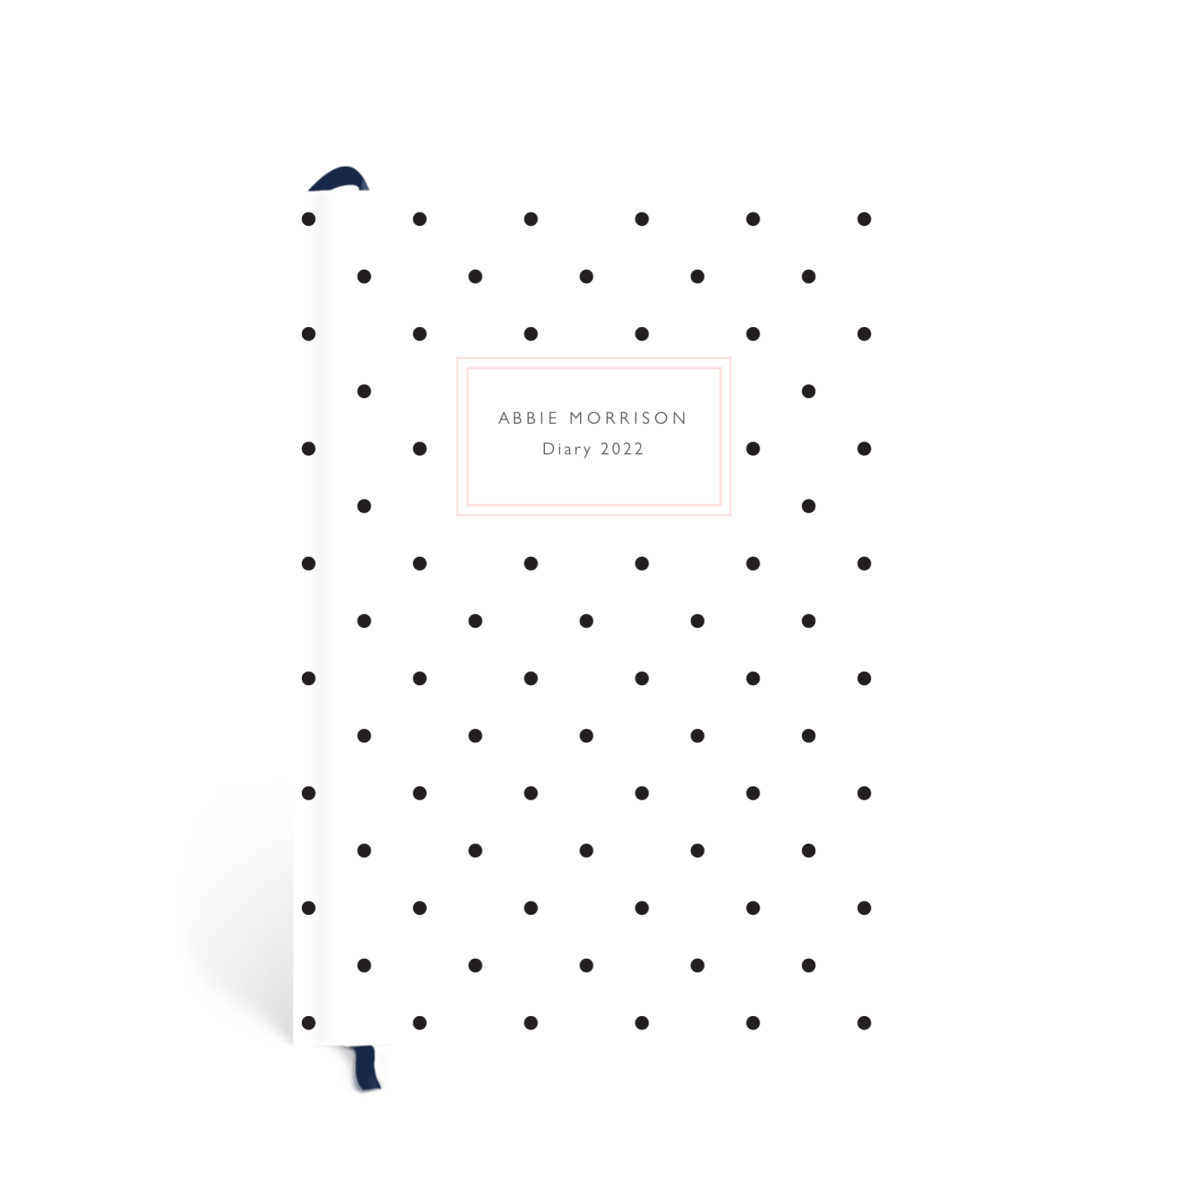 Https%3a%2f%2fwww.papier.com%2fproduct image%2f90578%2f36%2fpolka dots 22669 front 1570095478.png?ixlib=rb 1.1